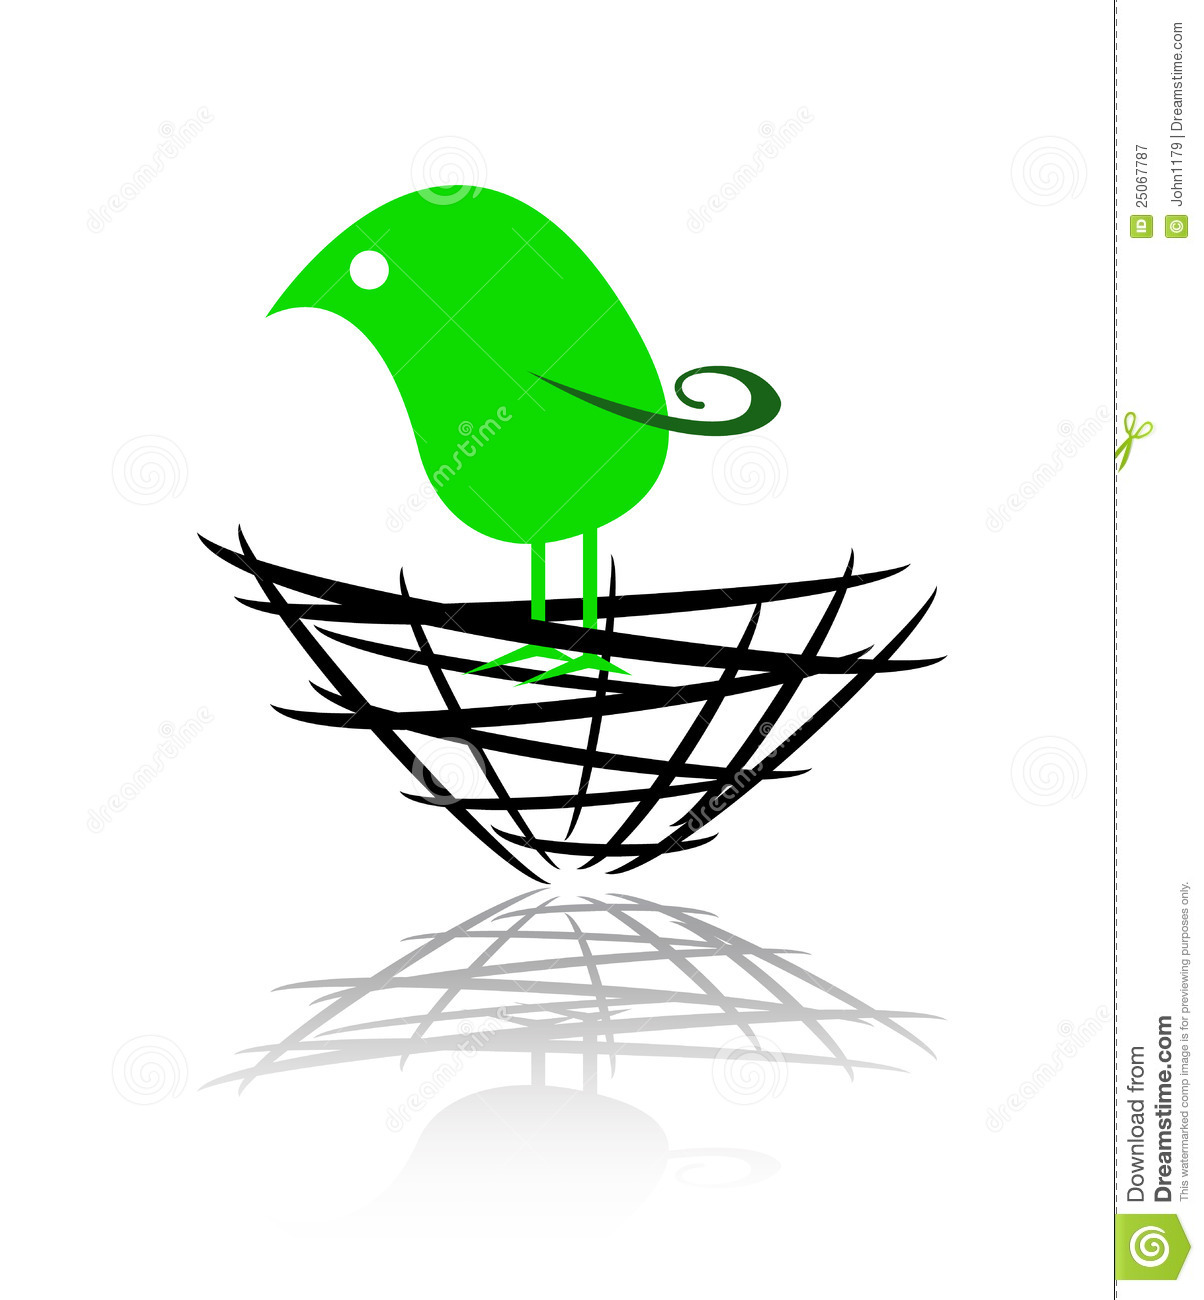 Logo Of A Bird In The Nest Royalty Free Stock Photography - Image ...